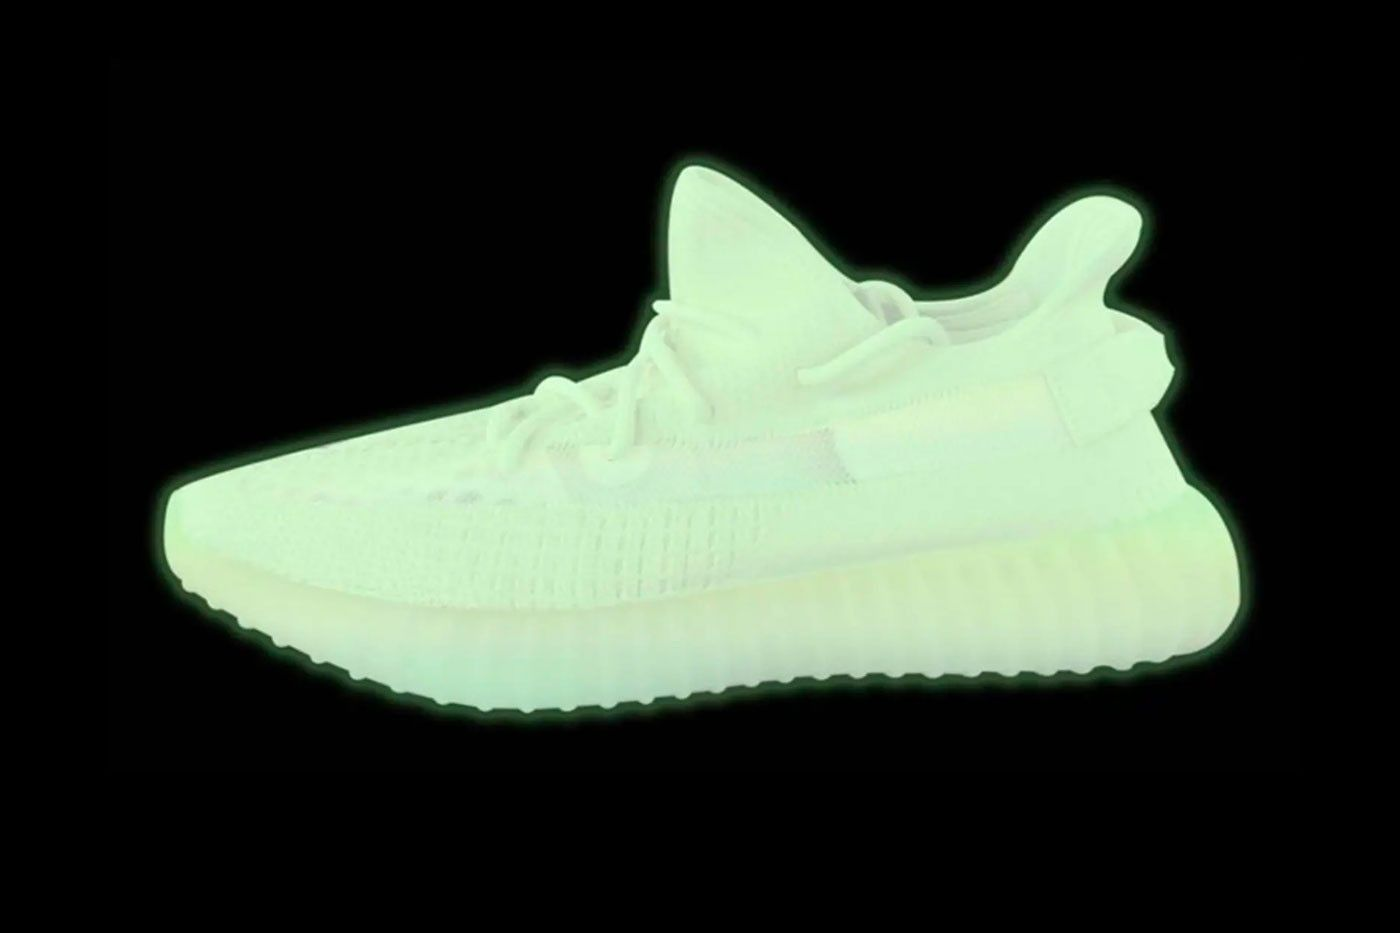 Glow In The Dark Adidas Yeezy Boost 350 V2 Expected To Release Next Year Yeezy Adidas Yeezy Boost Yeezy Boost